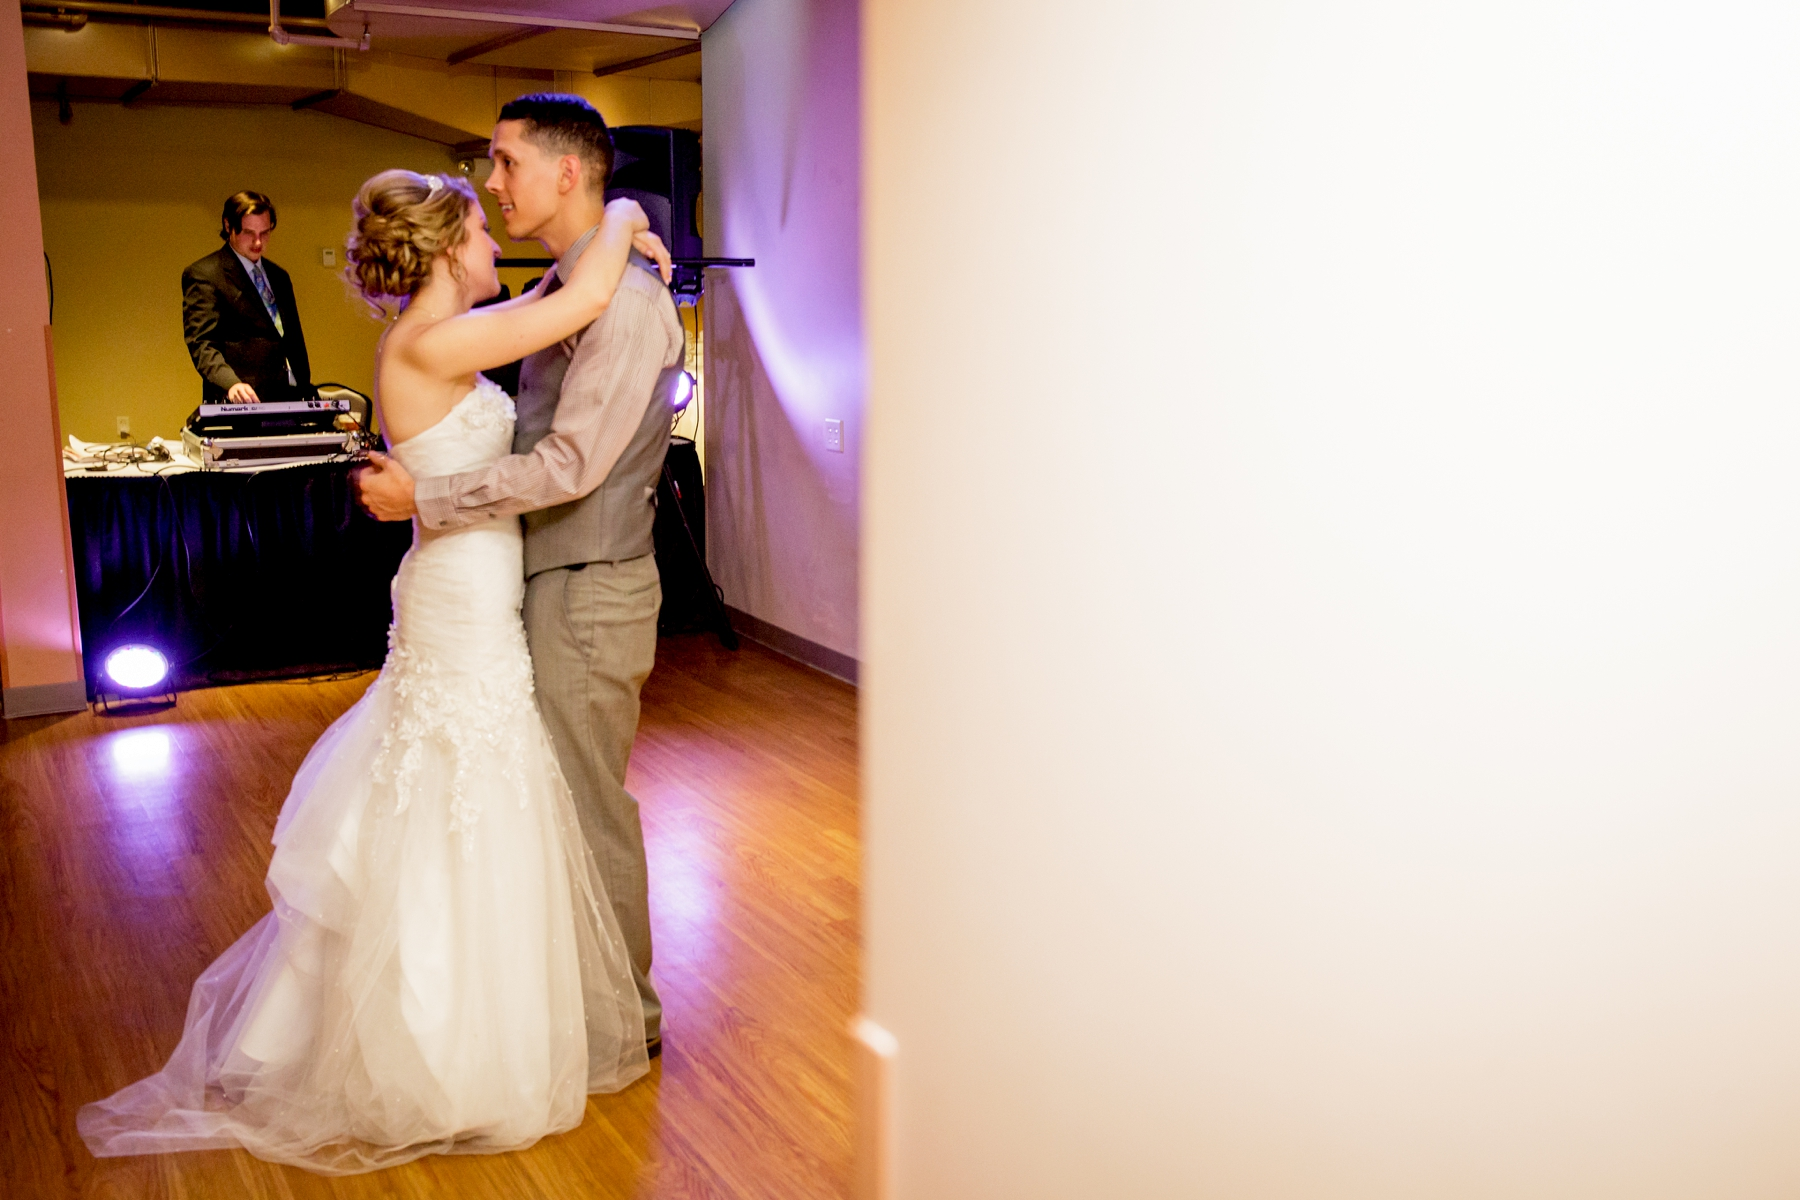 Brandon_Shafer_Photography_Kristen_Corey_Downtown_Grand_Rapids_Fall_Wedding0047.JPG